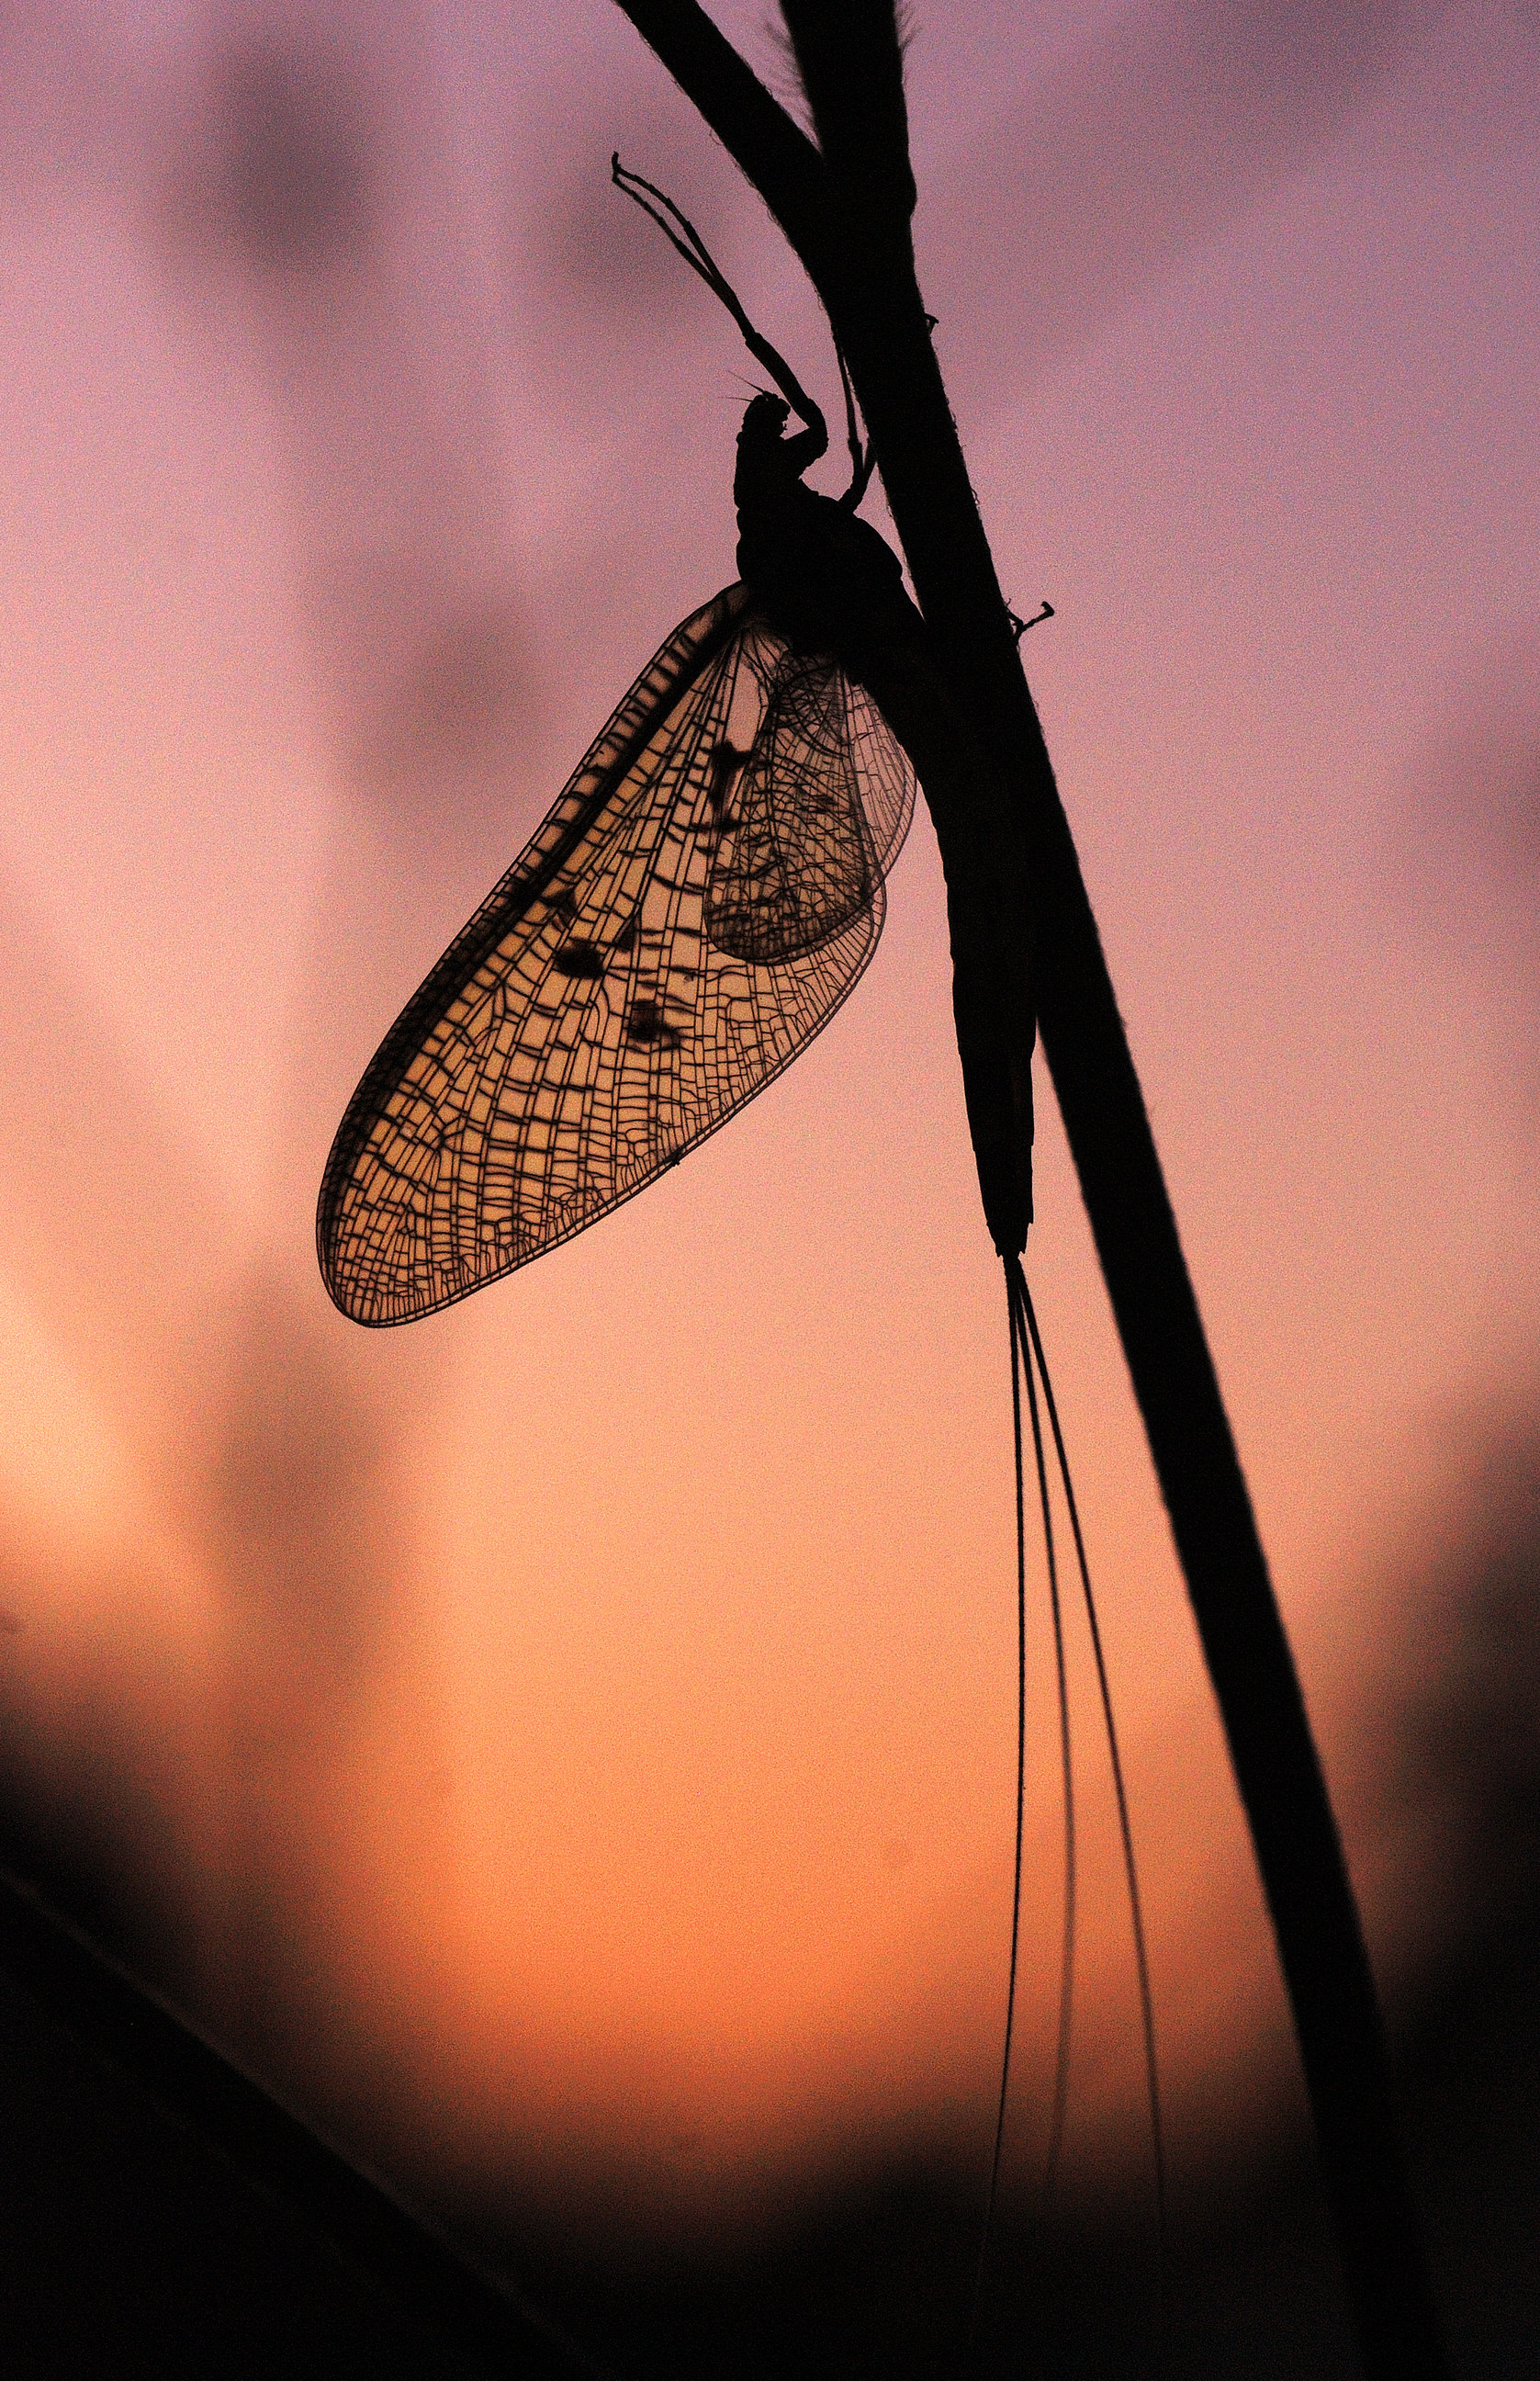 Adult mayfly at sunset